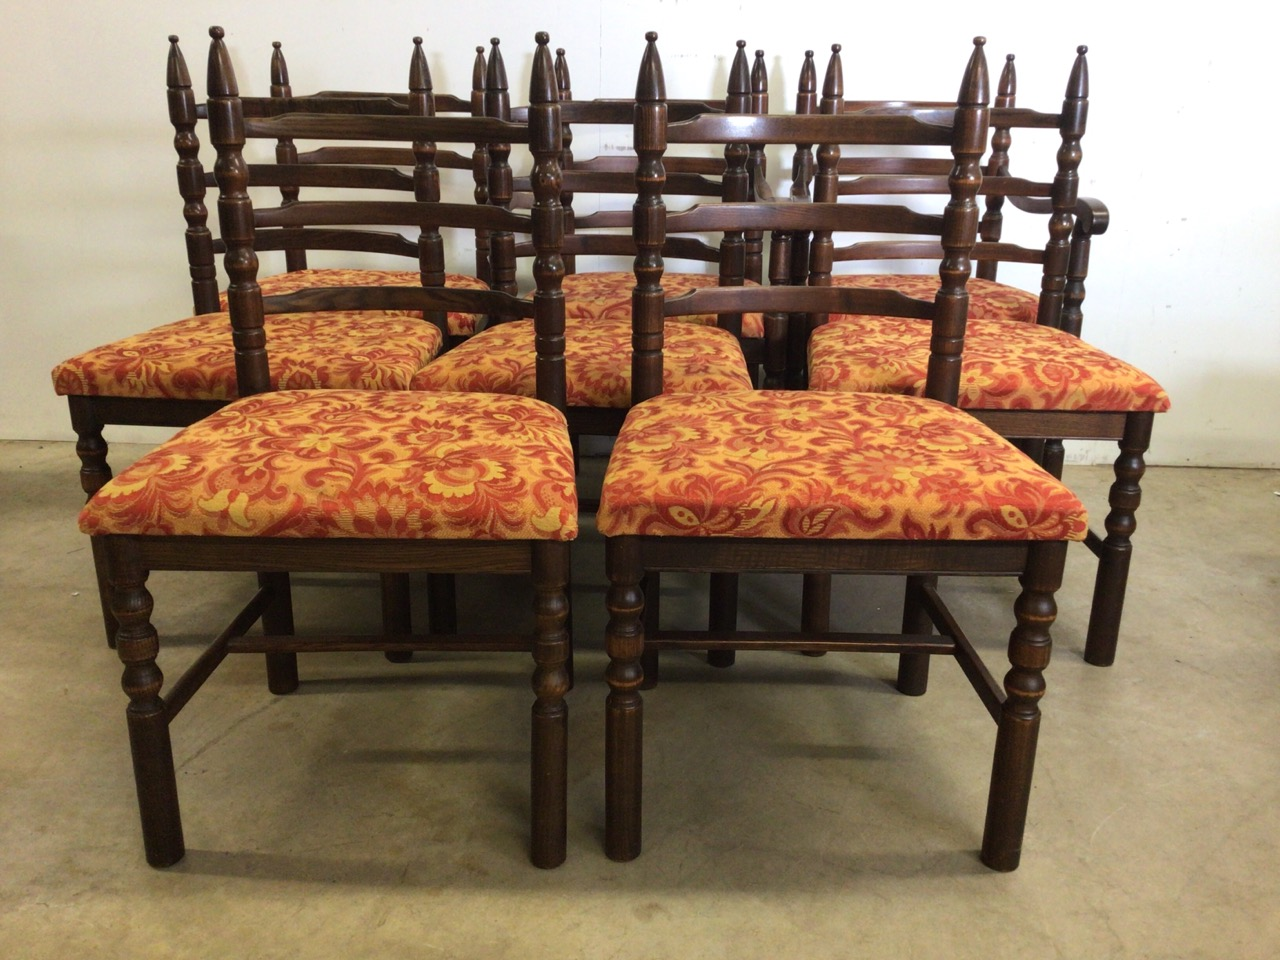 A set of eight mid century dining chairs by Younger. Seat height H:48cm